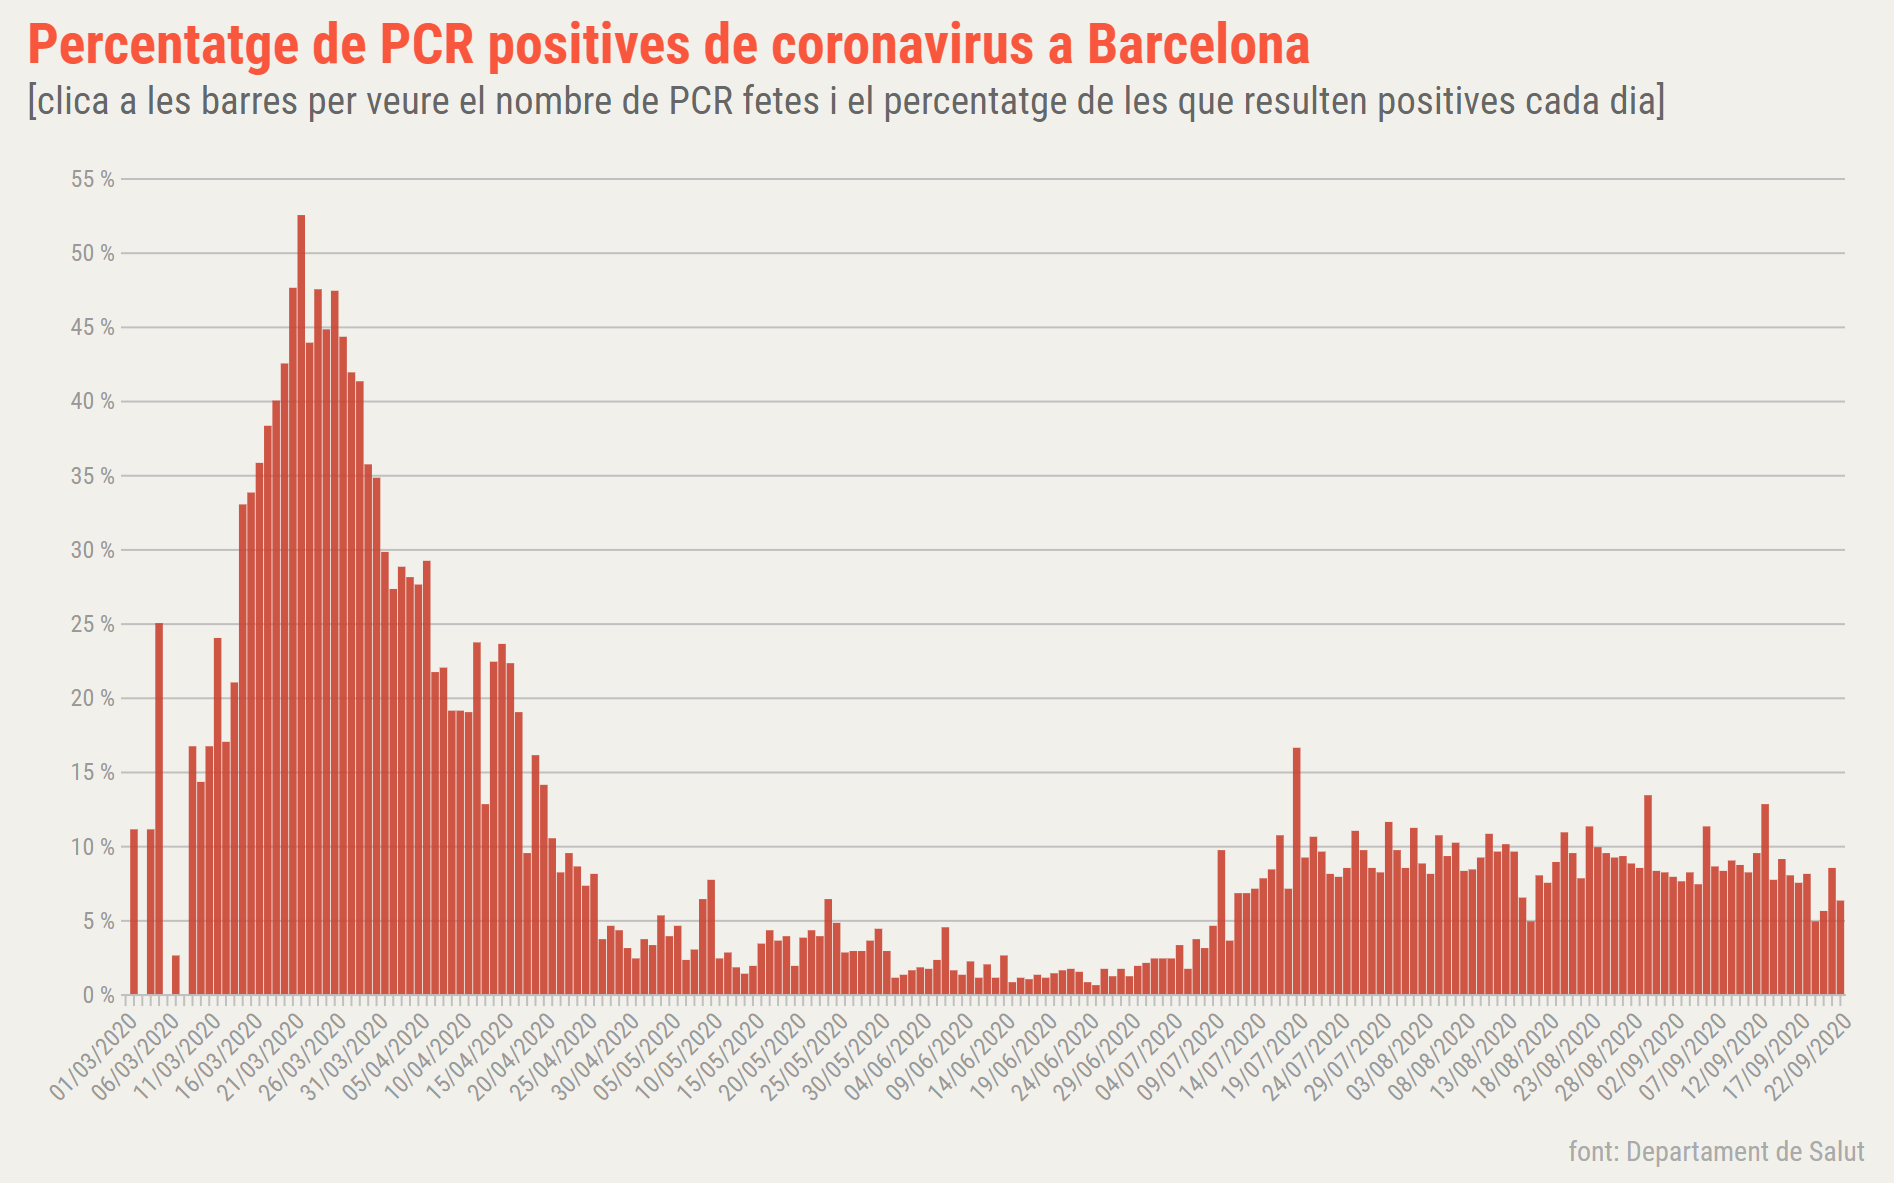 pcr positives bcn